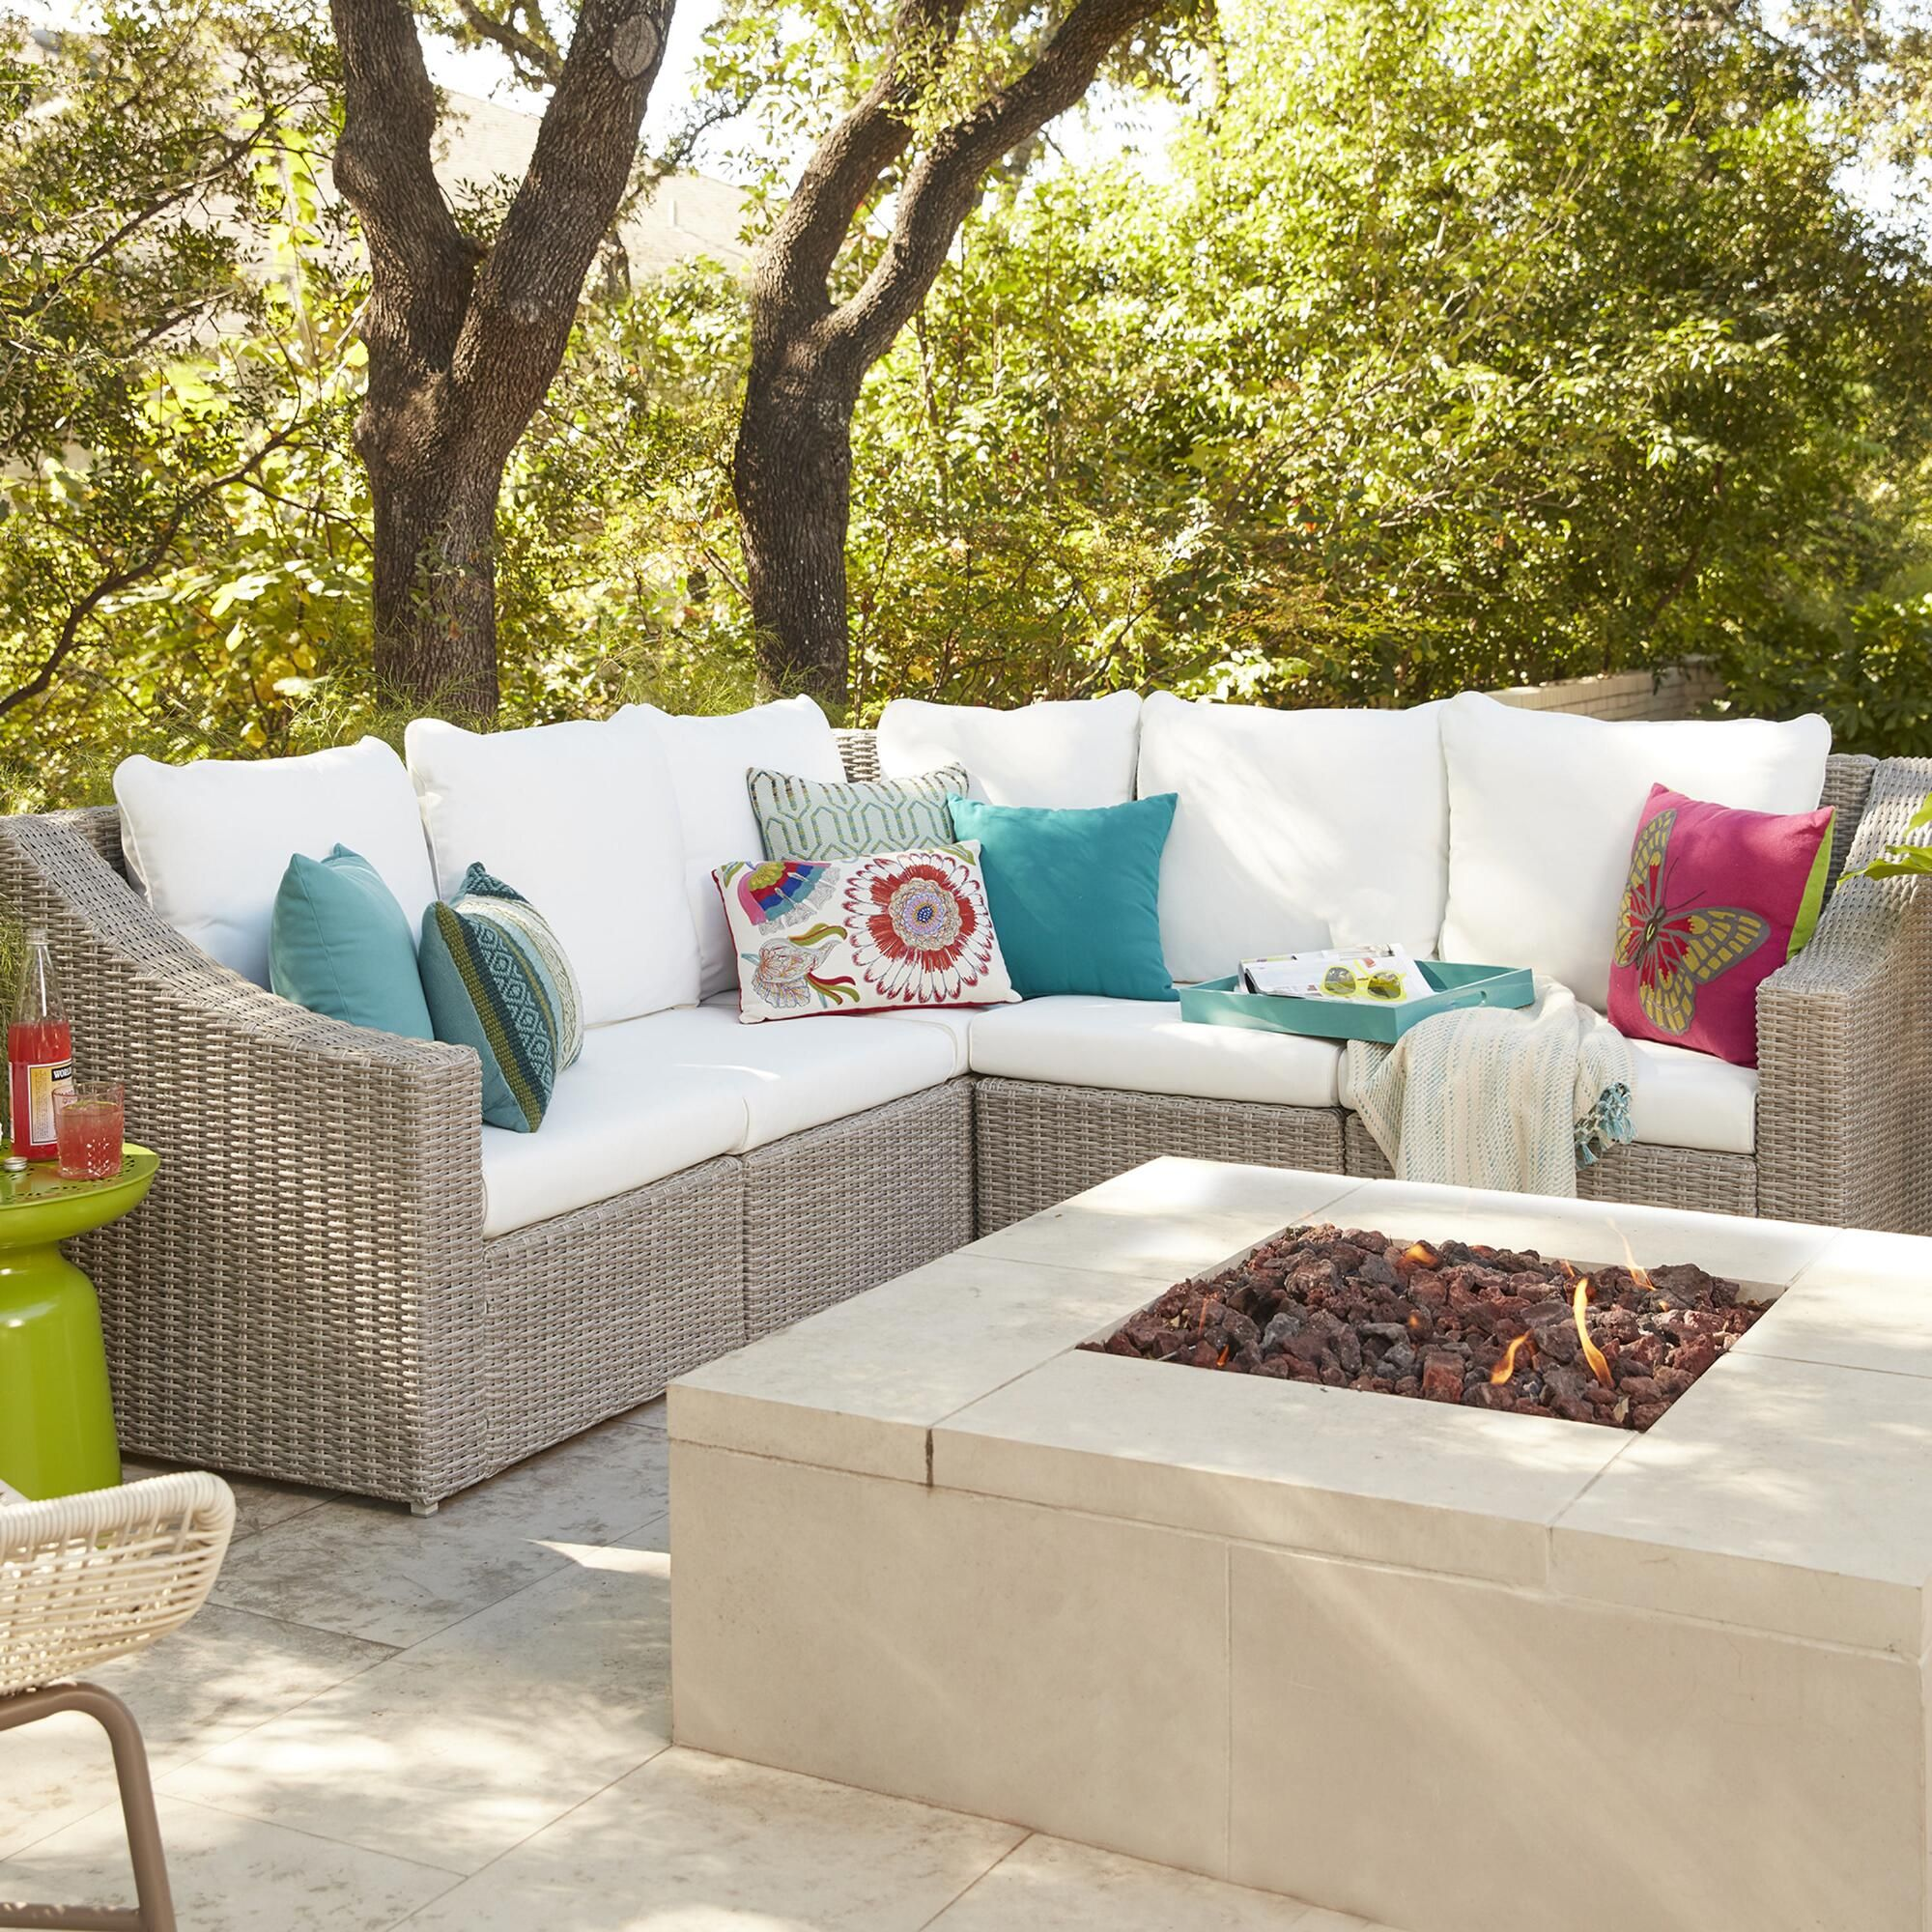 Gray Veracruz Outdoor Sectional Sofa outdoor